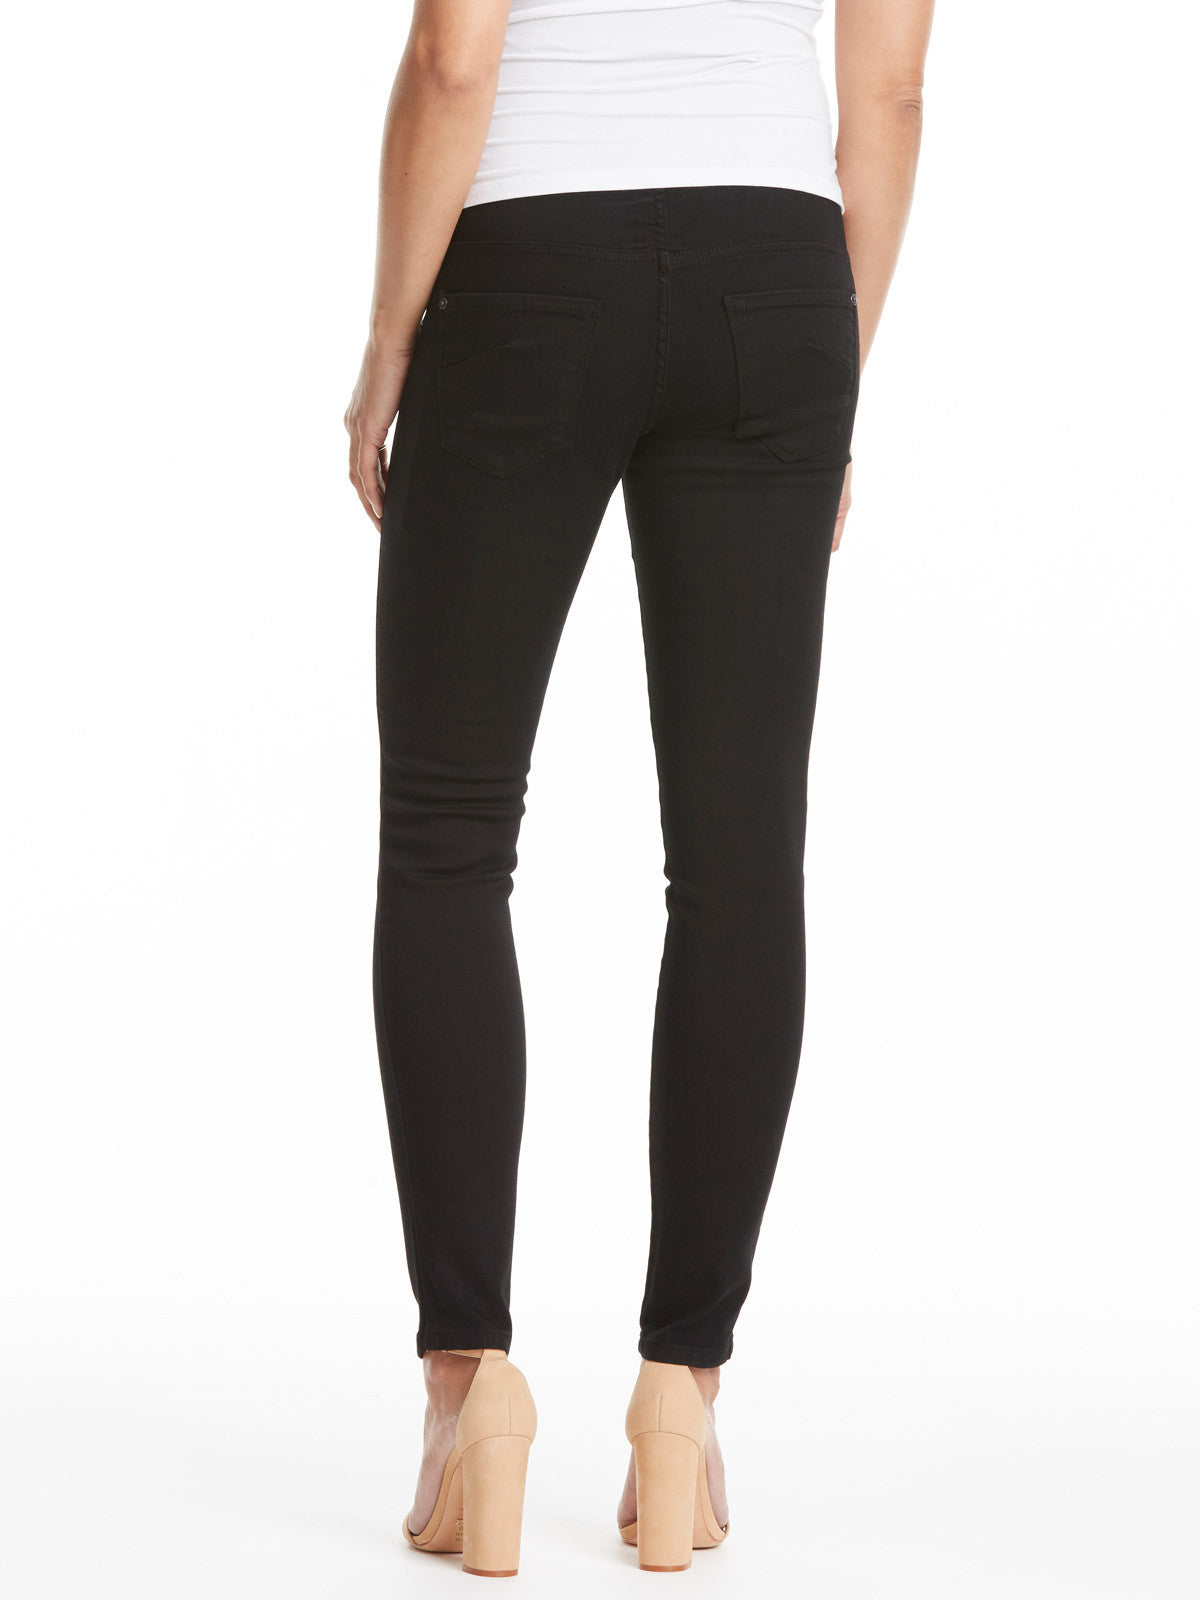 TILDEN | James Jeans Twiggy Maternity Jean with Belly Panel - Black Clean